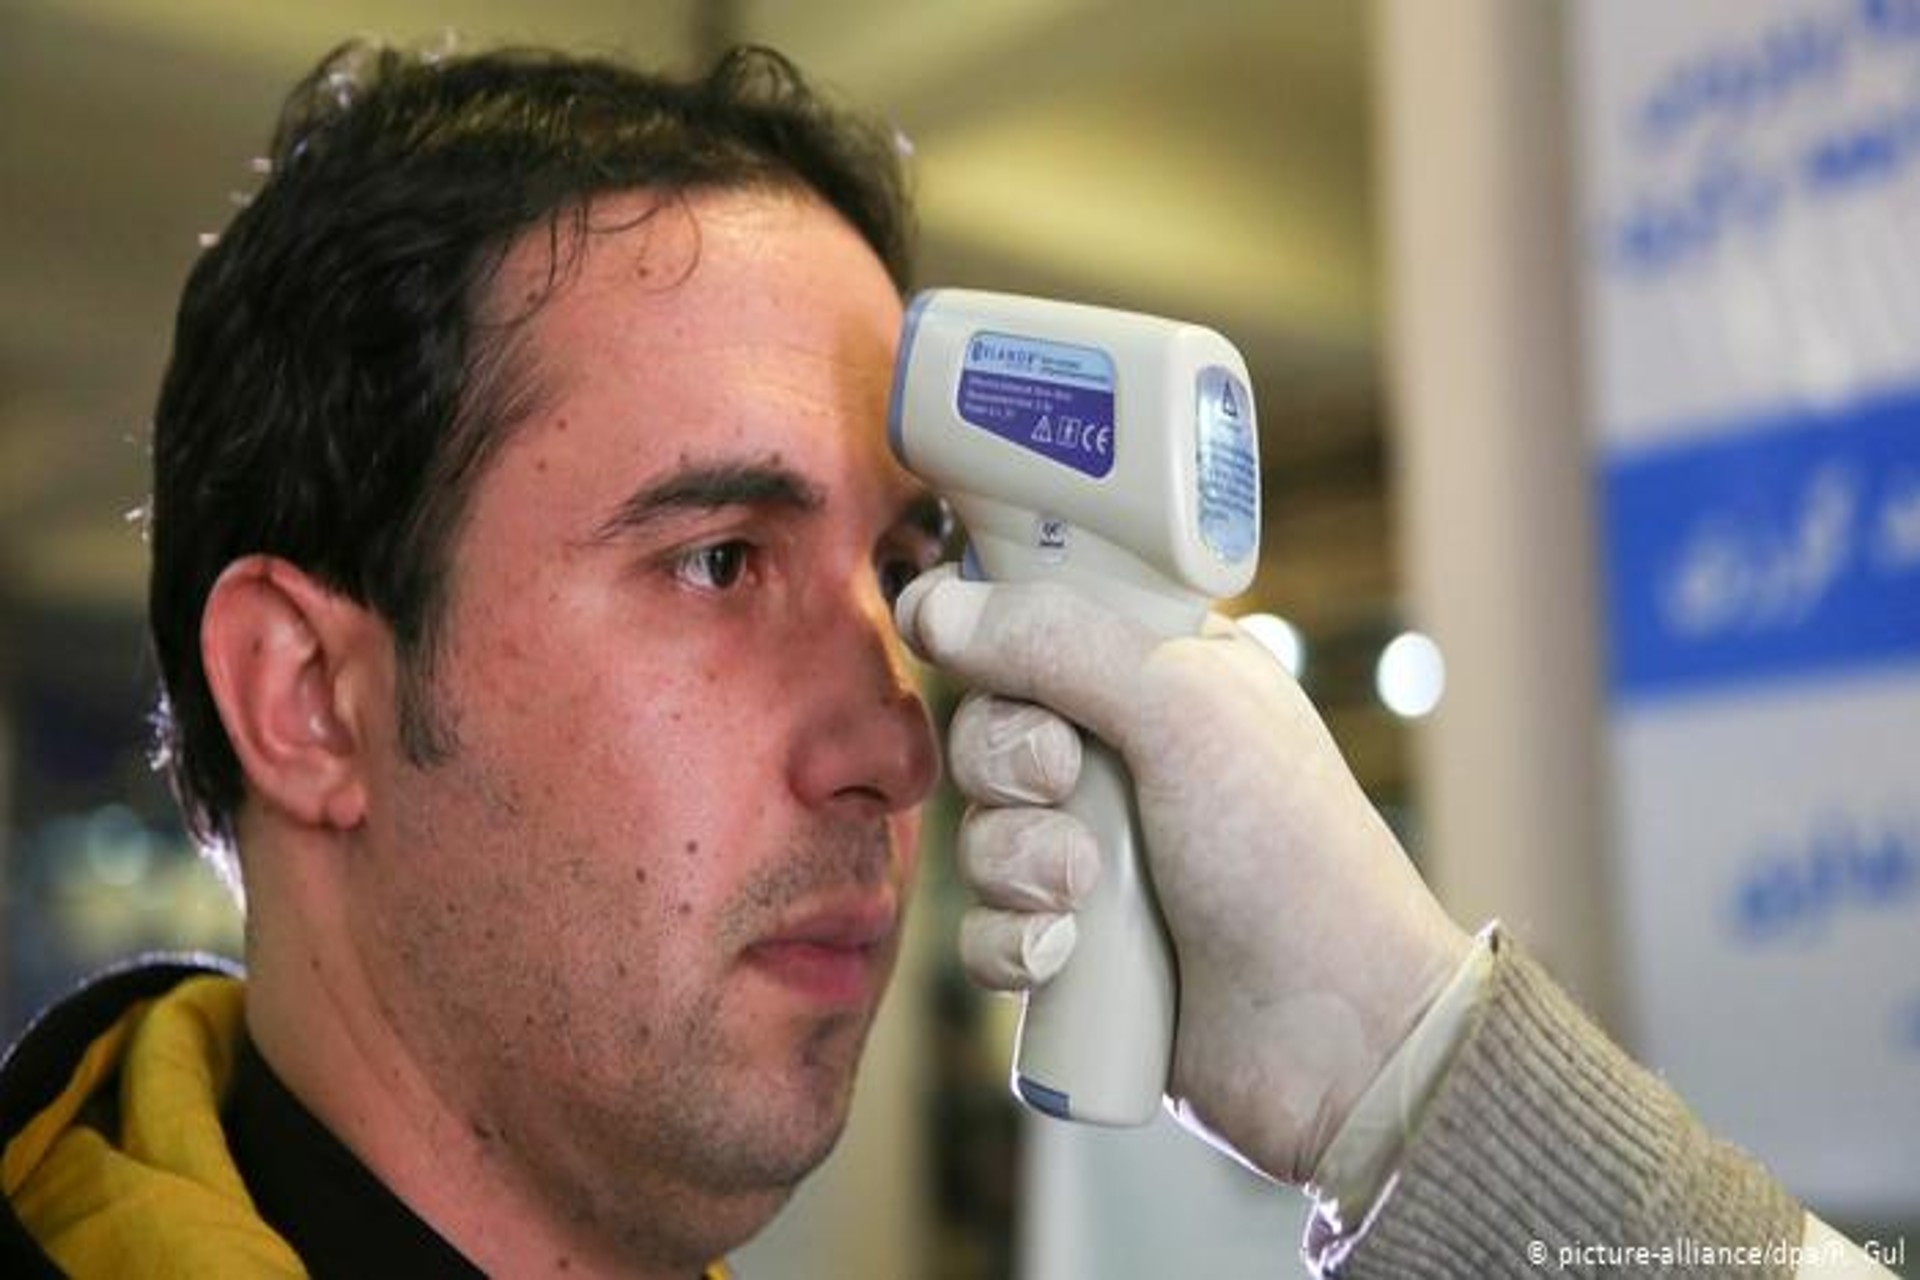 How To Ensure Proper Working Of Hospital Thermometers?